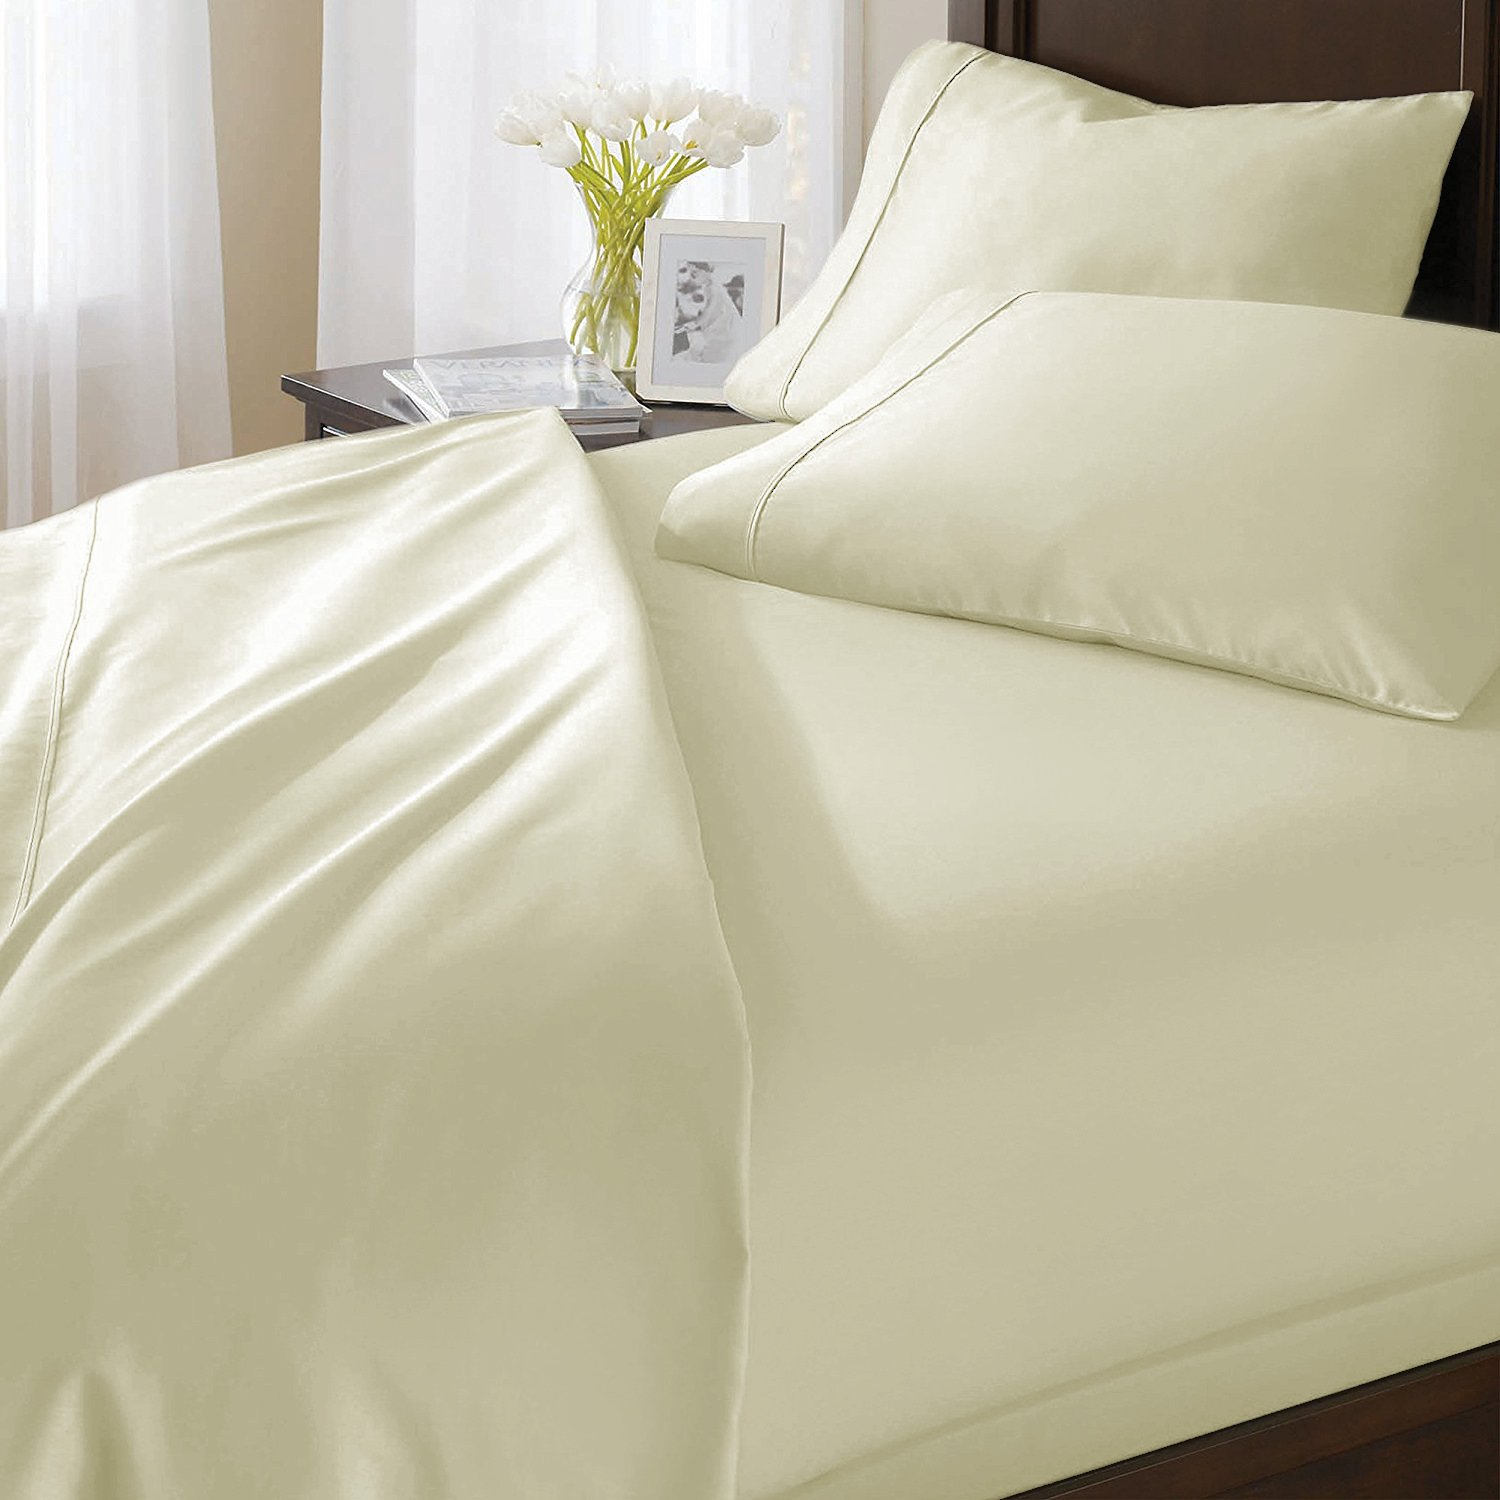 Duvet Cover /& 2 Pillow Shams Casa Decor Collections Exclusive Egyptian Cotton 1000 Thread Count Sold Full//Queen, Silver Grey Superior Softness-Italian Finish 3-Piece Duvet Set Solid